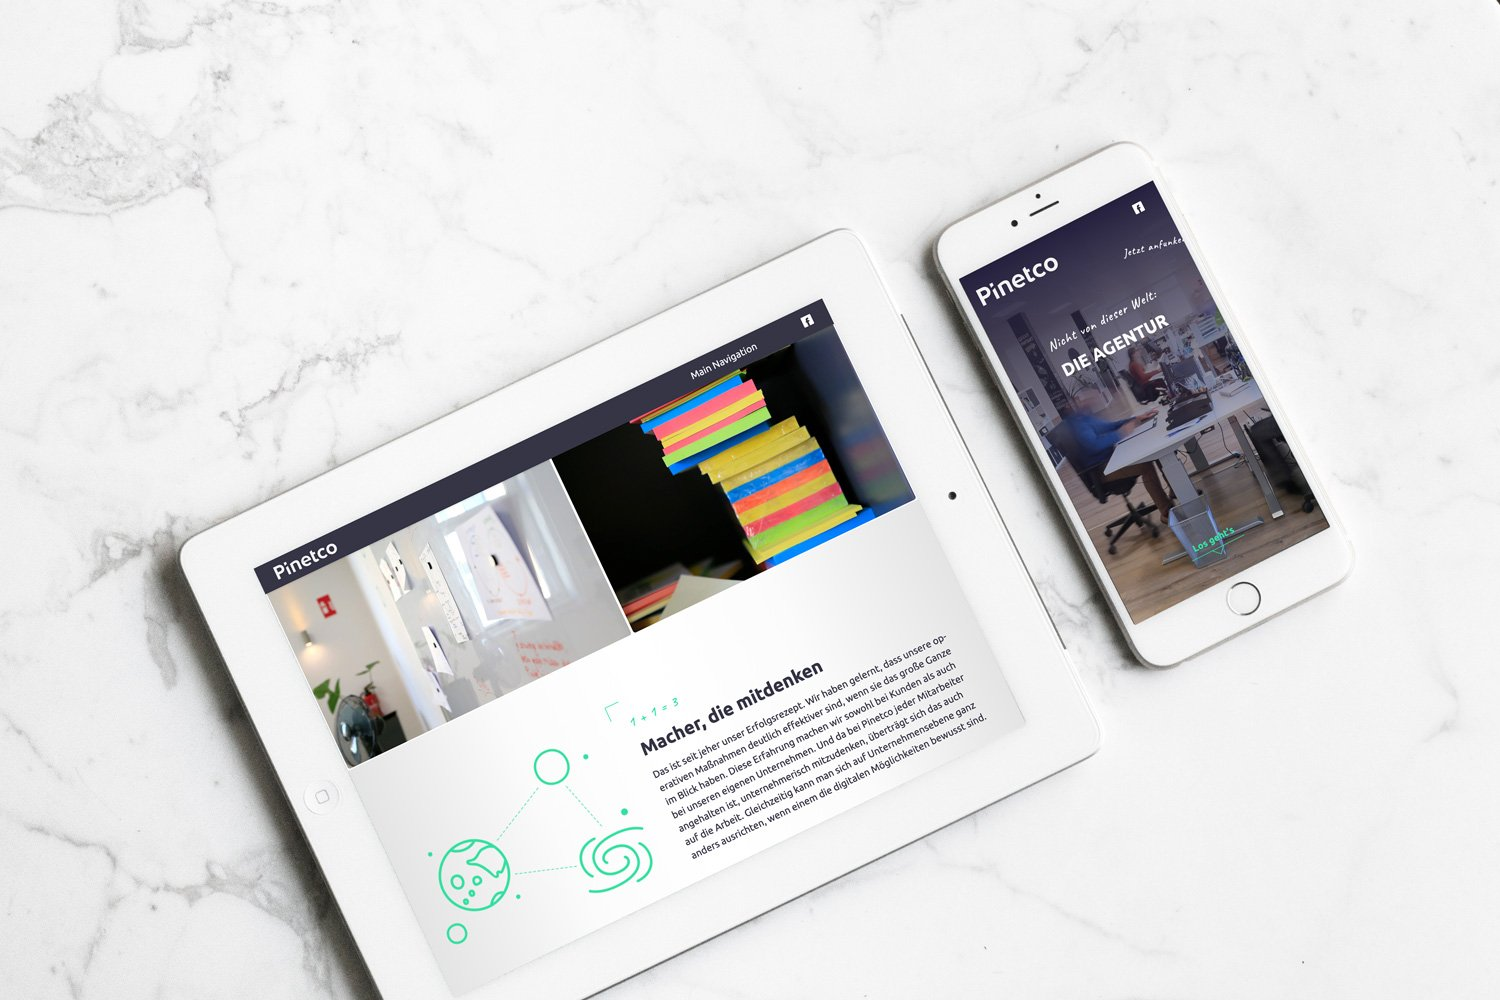 webdesign-mockups-ipad-iphone